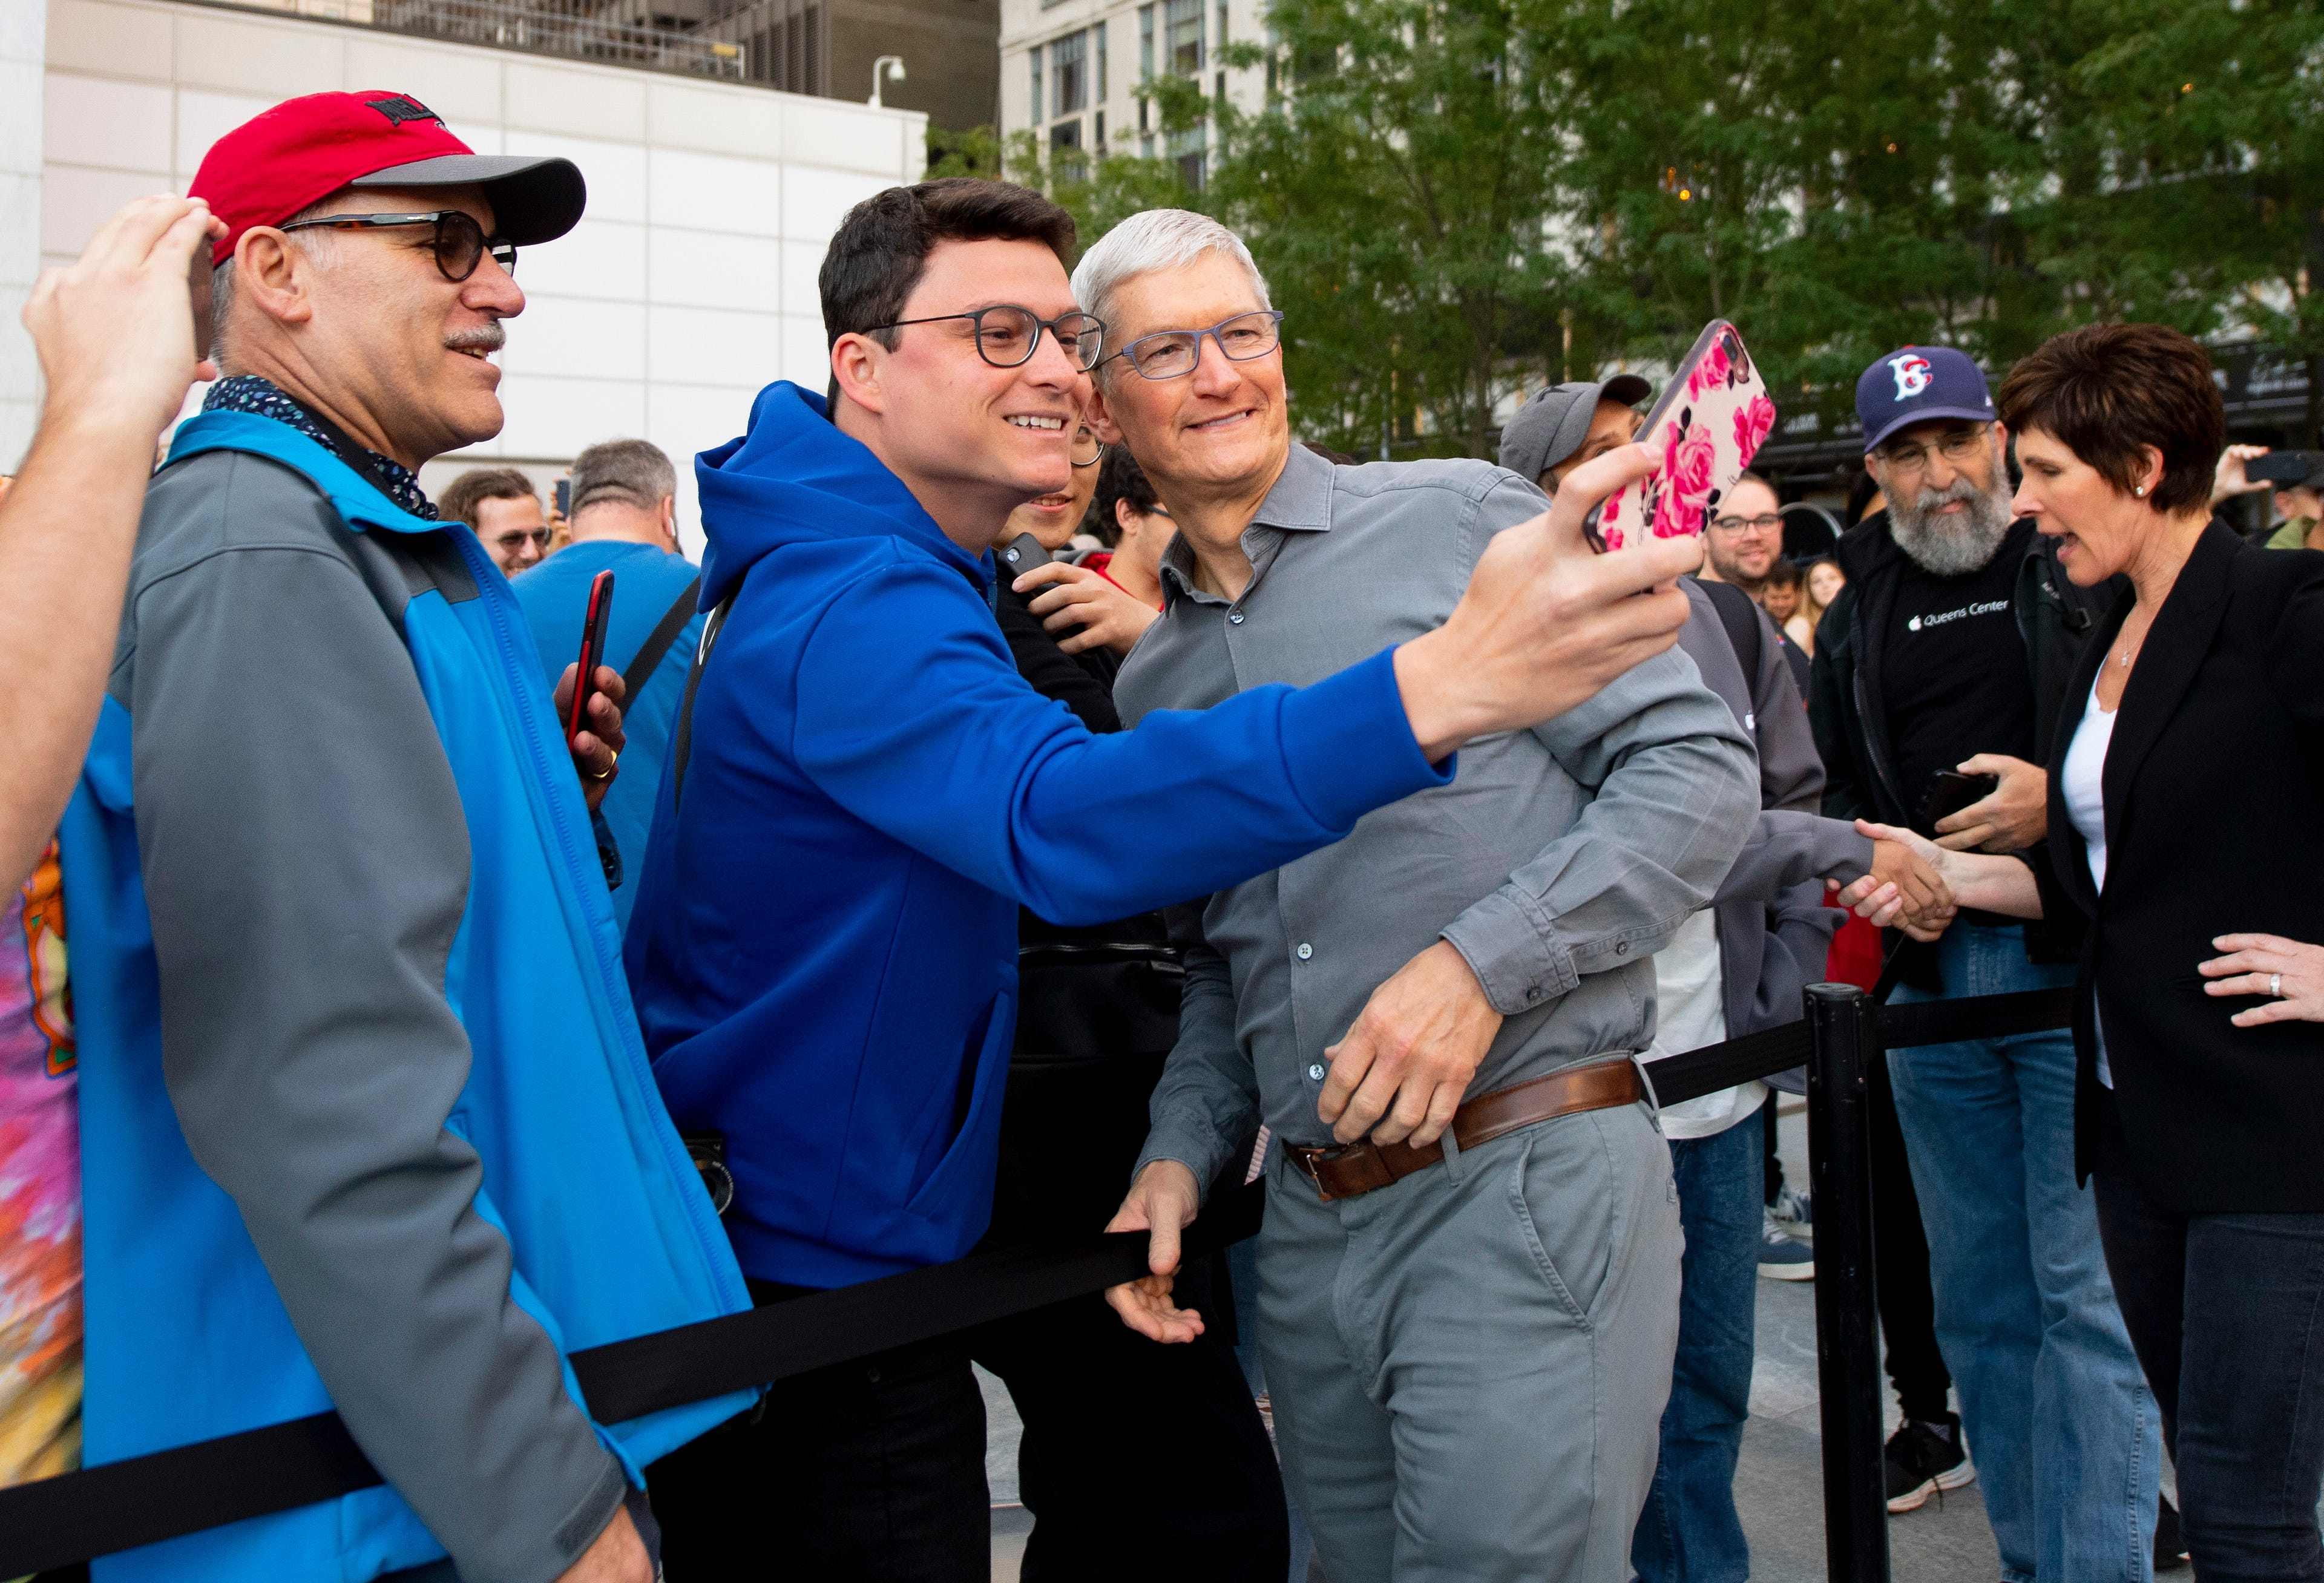 iPhone 11 goes on sale as Tim Cook greets early buyers at NYC store